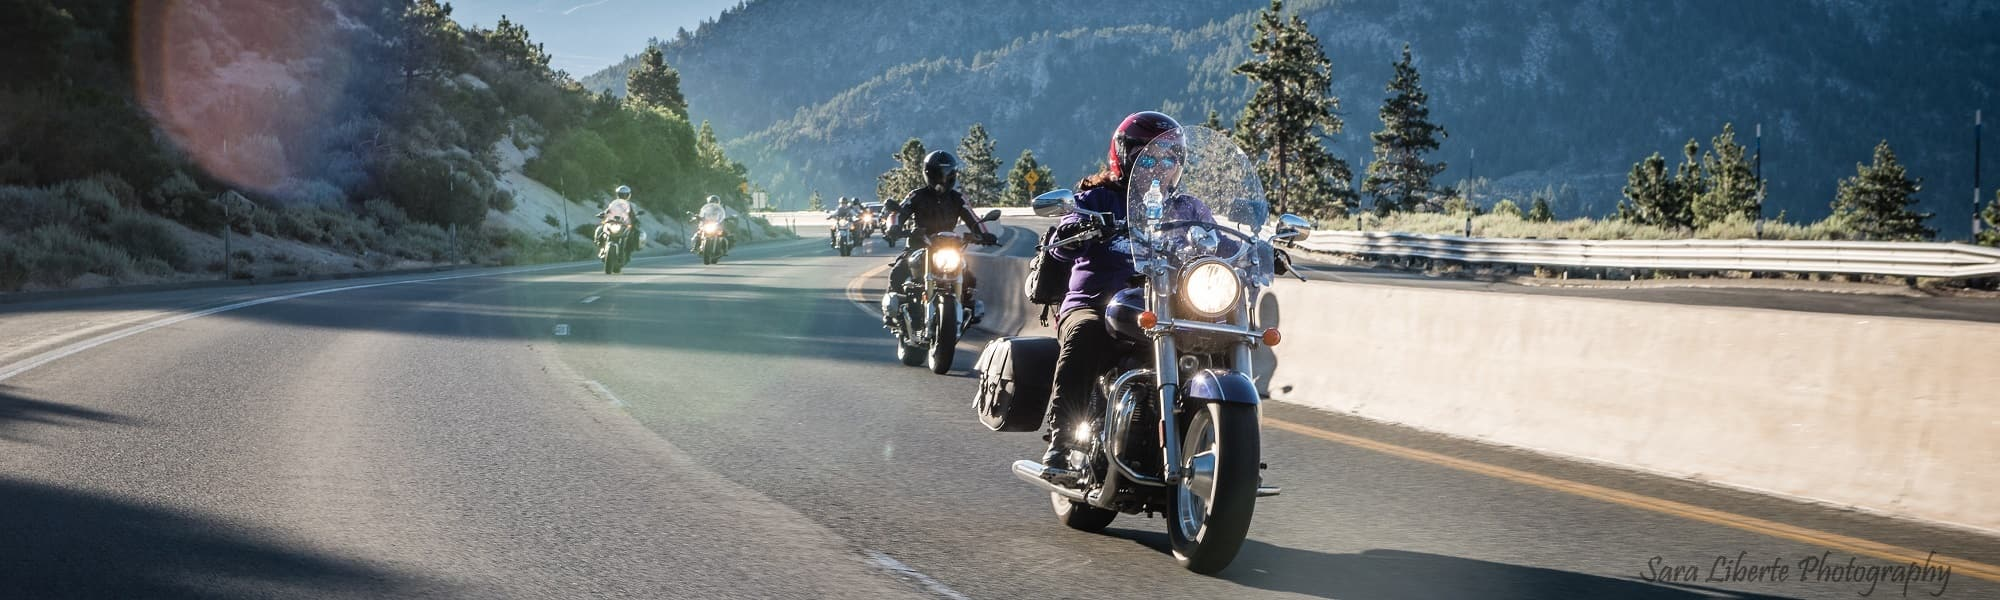 Suffragists Centennial Motorcycle Ride Routes & Registration Released [1]